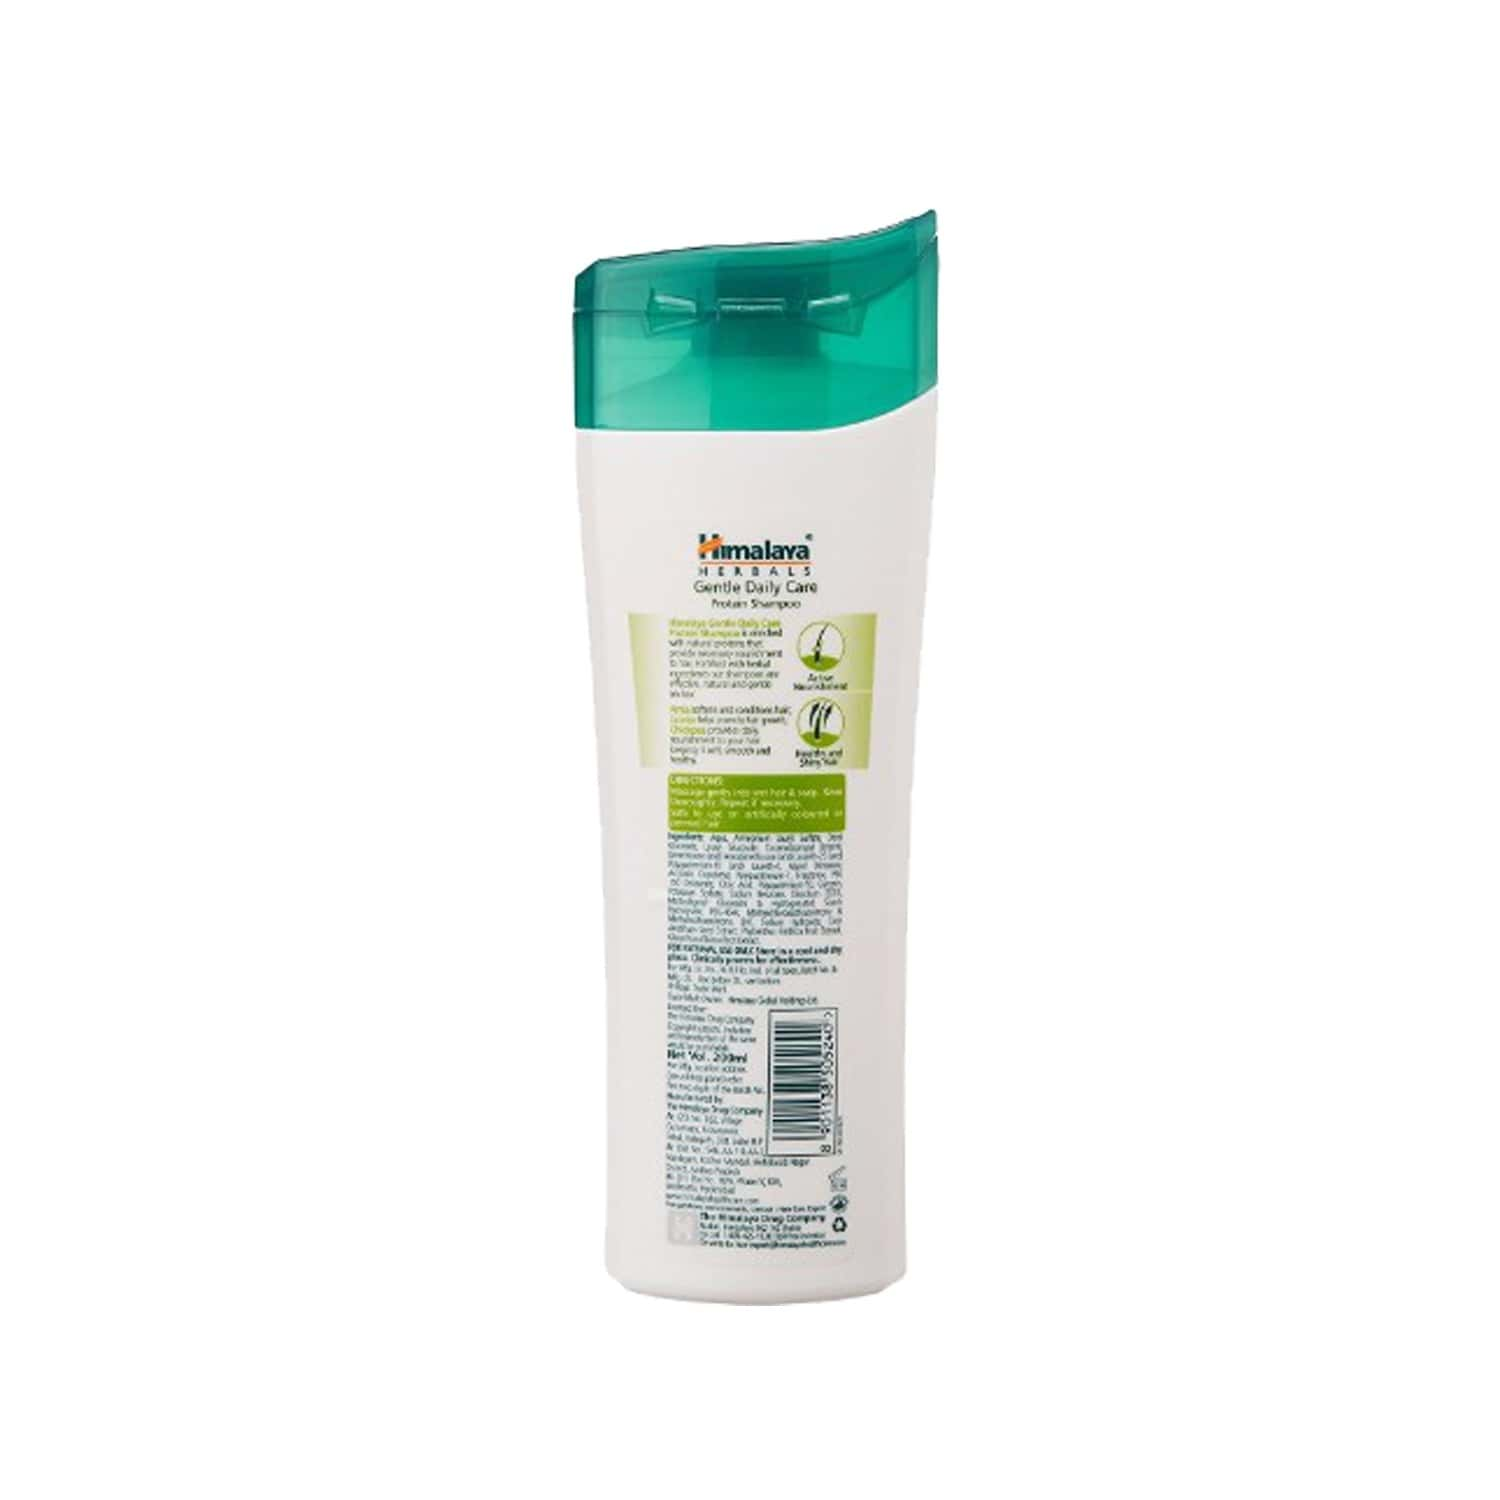 Himalaya Protein Shampoo, Gentle Daily Care 200 Ml